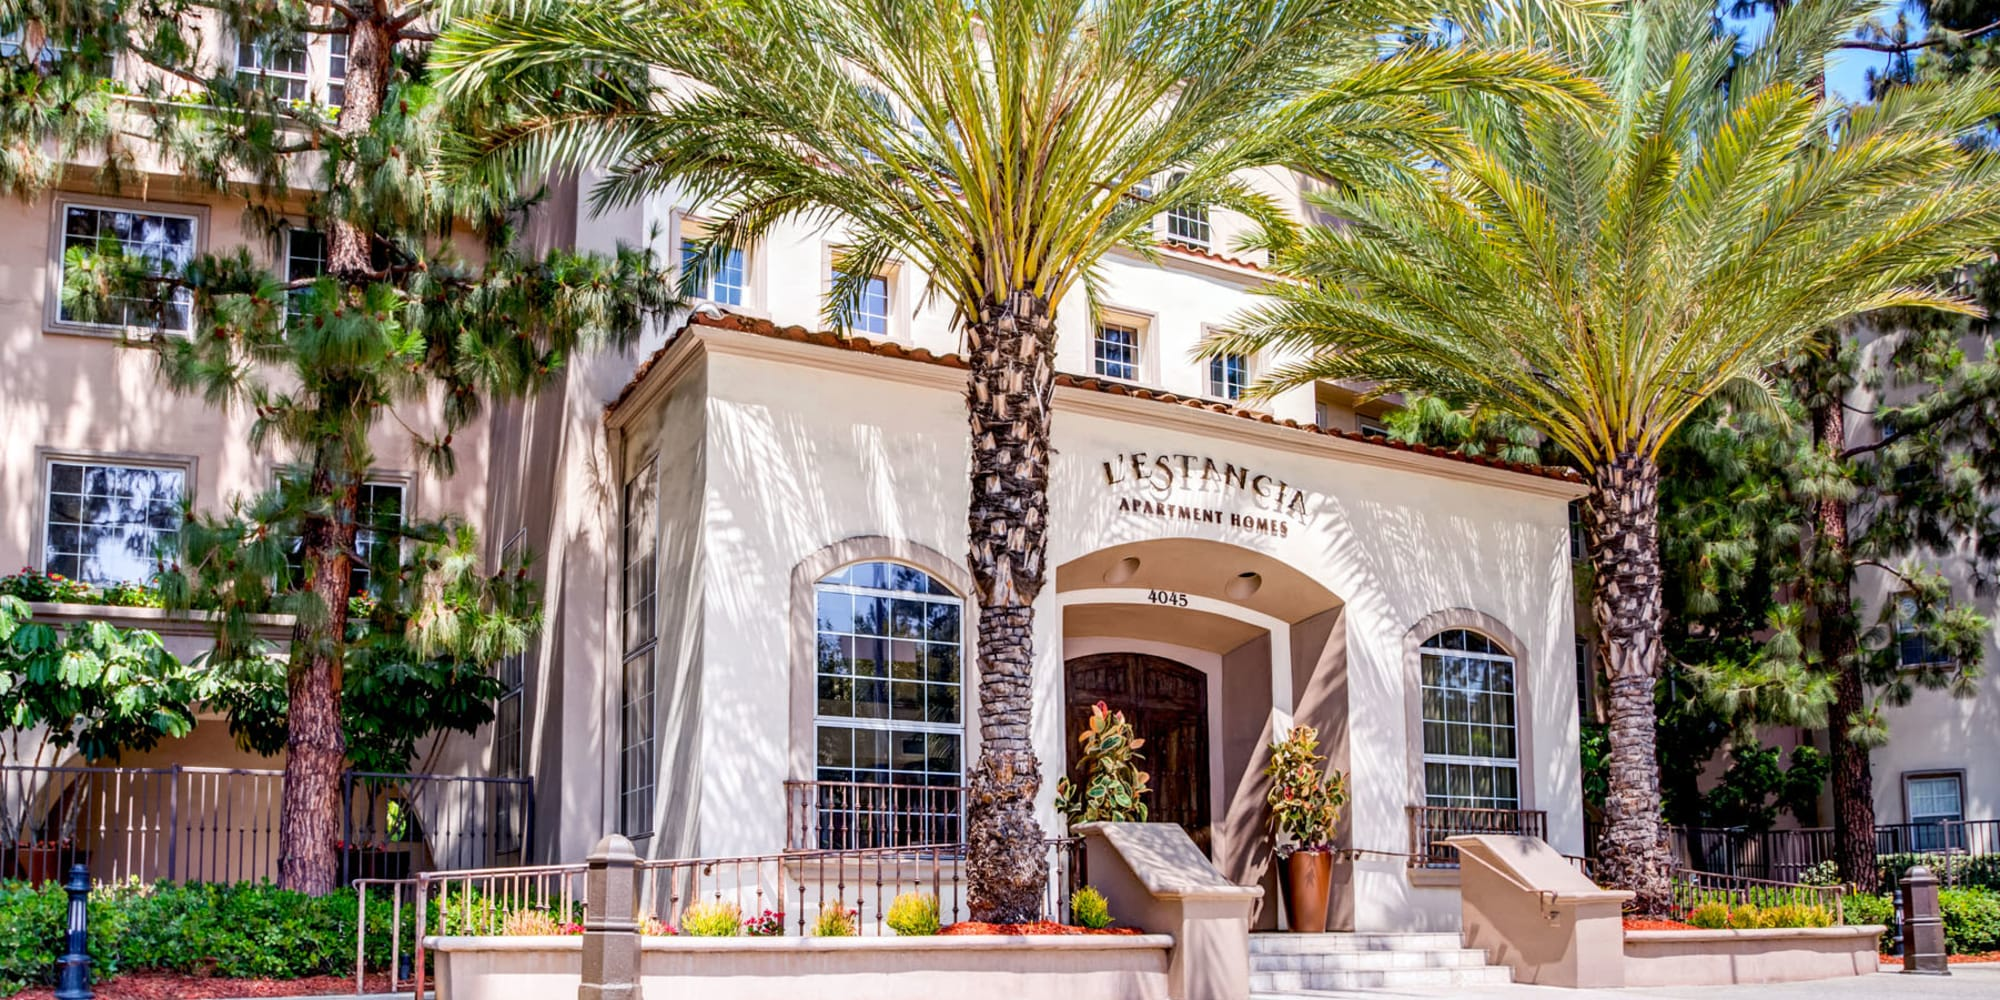 Exterior view of the entrance to our luxury community at L'Estancia in Studio City, California